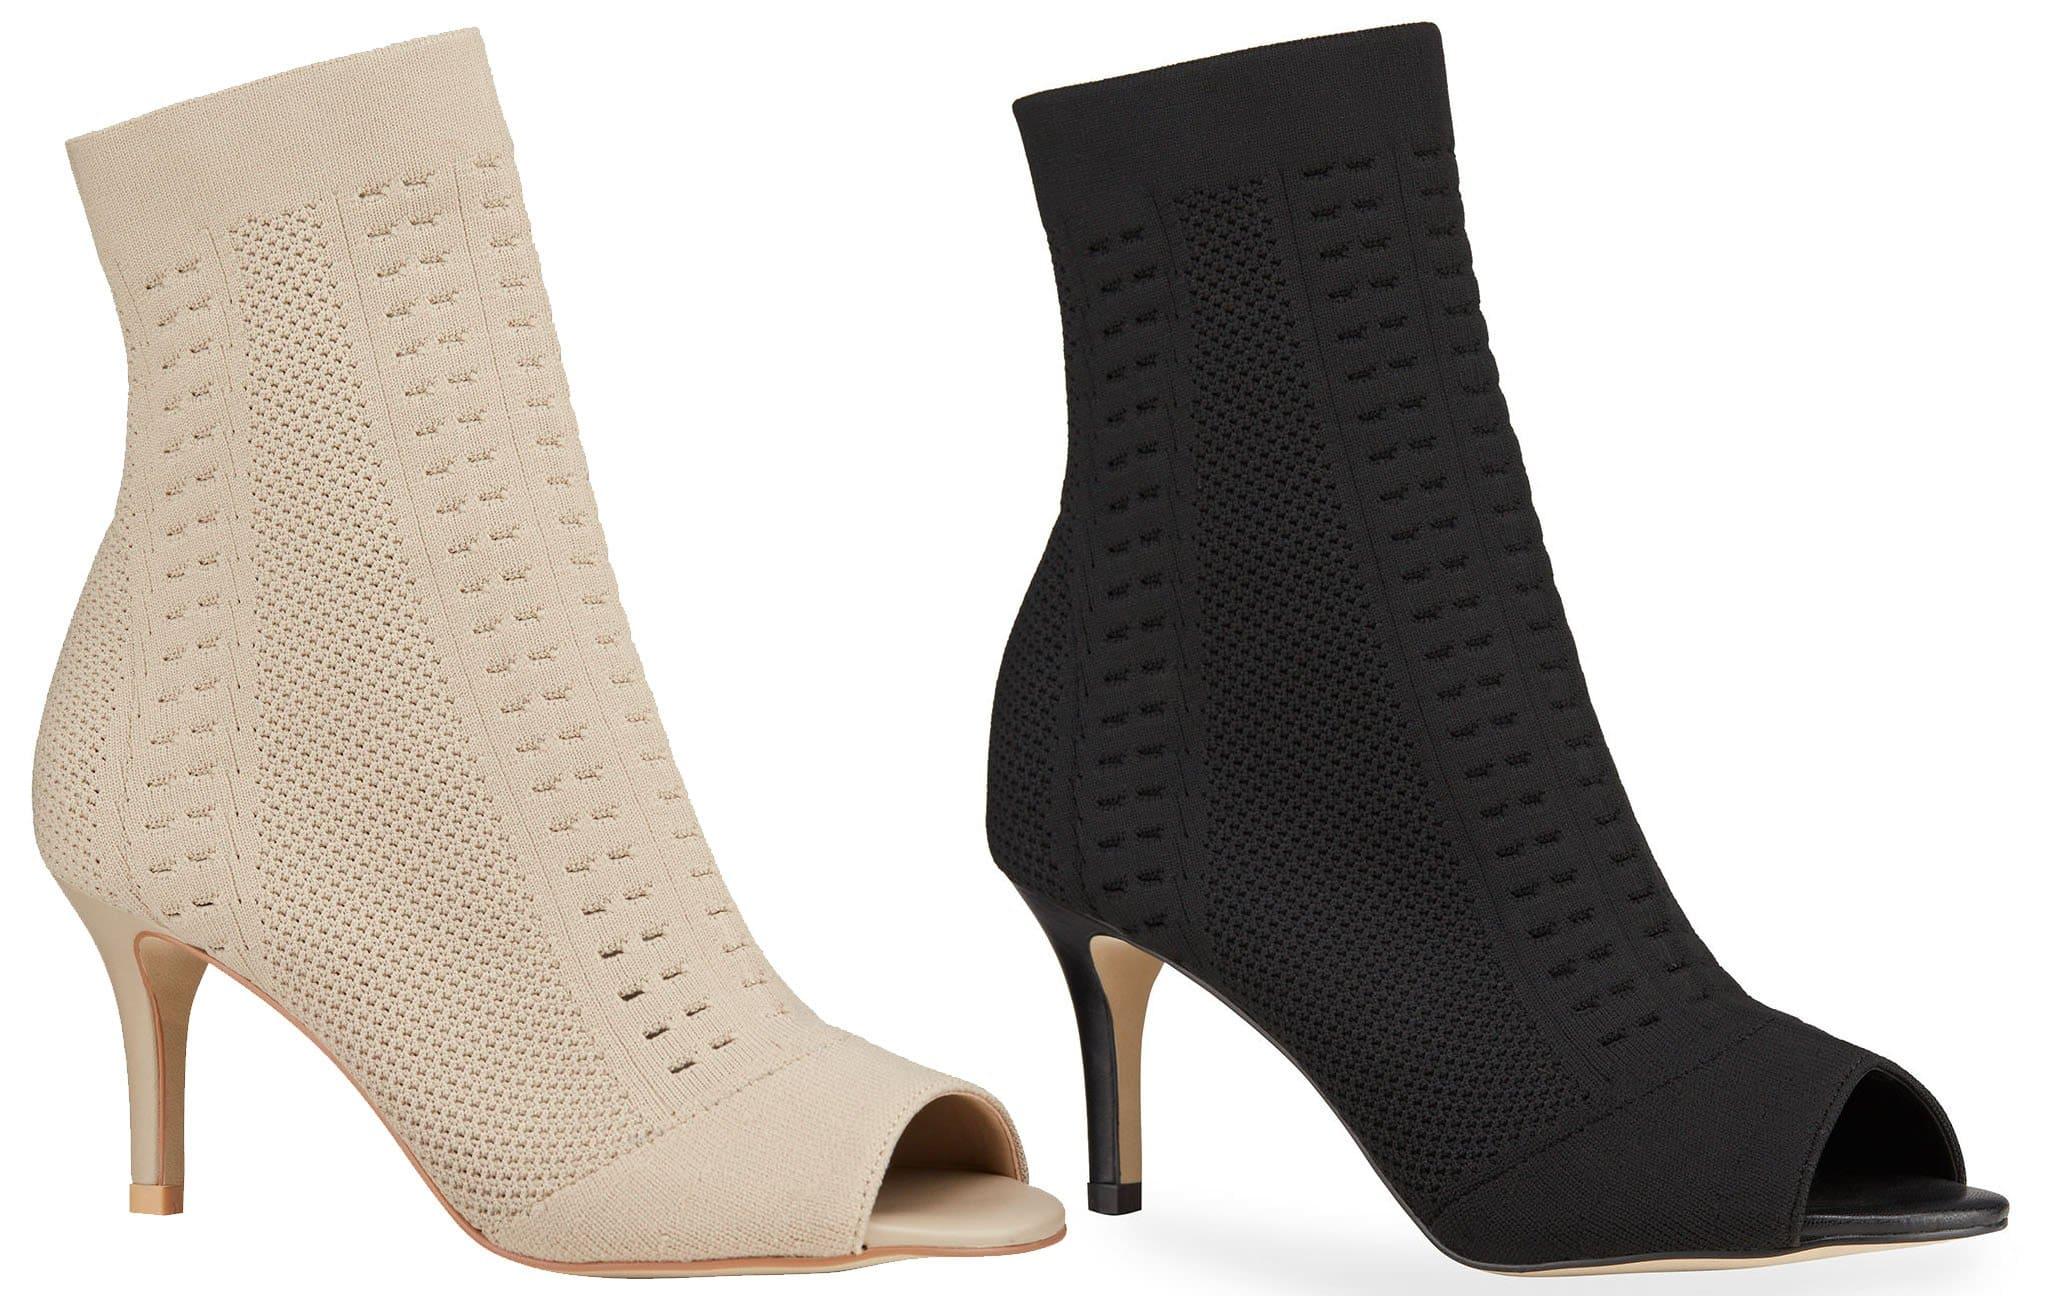 Minimalist stretch-knit ankle sock booties, like the Allegra James Lina, will give a chic seamless look